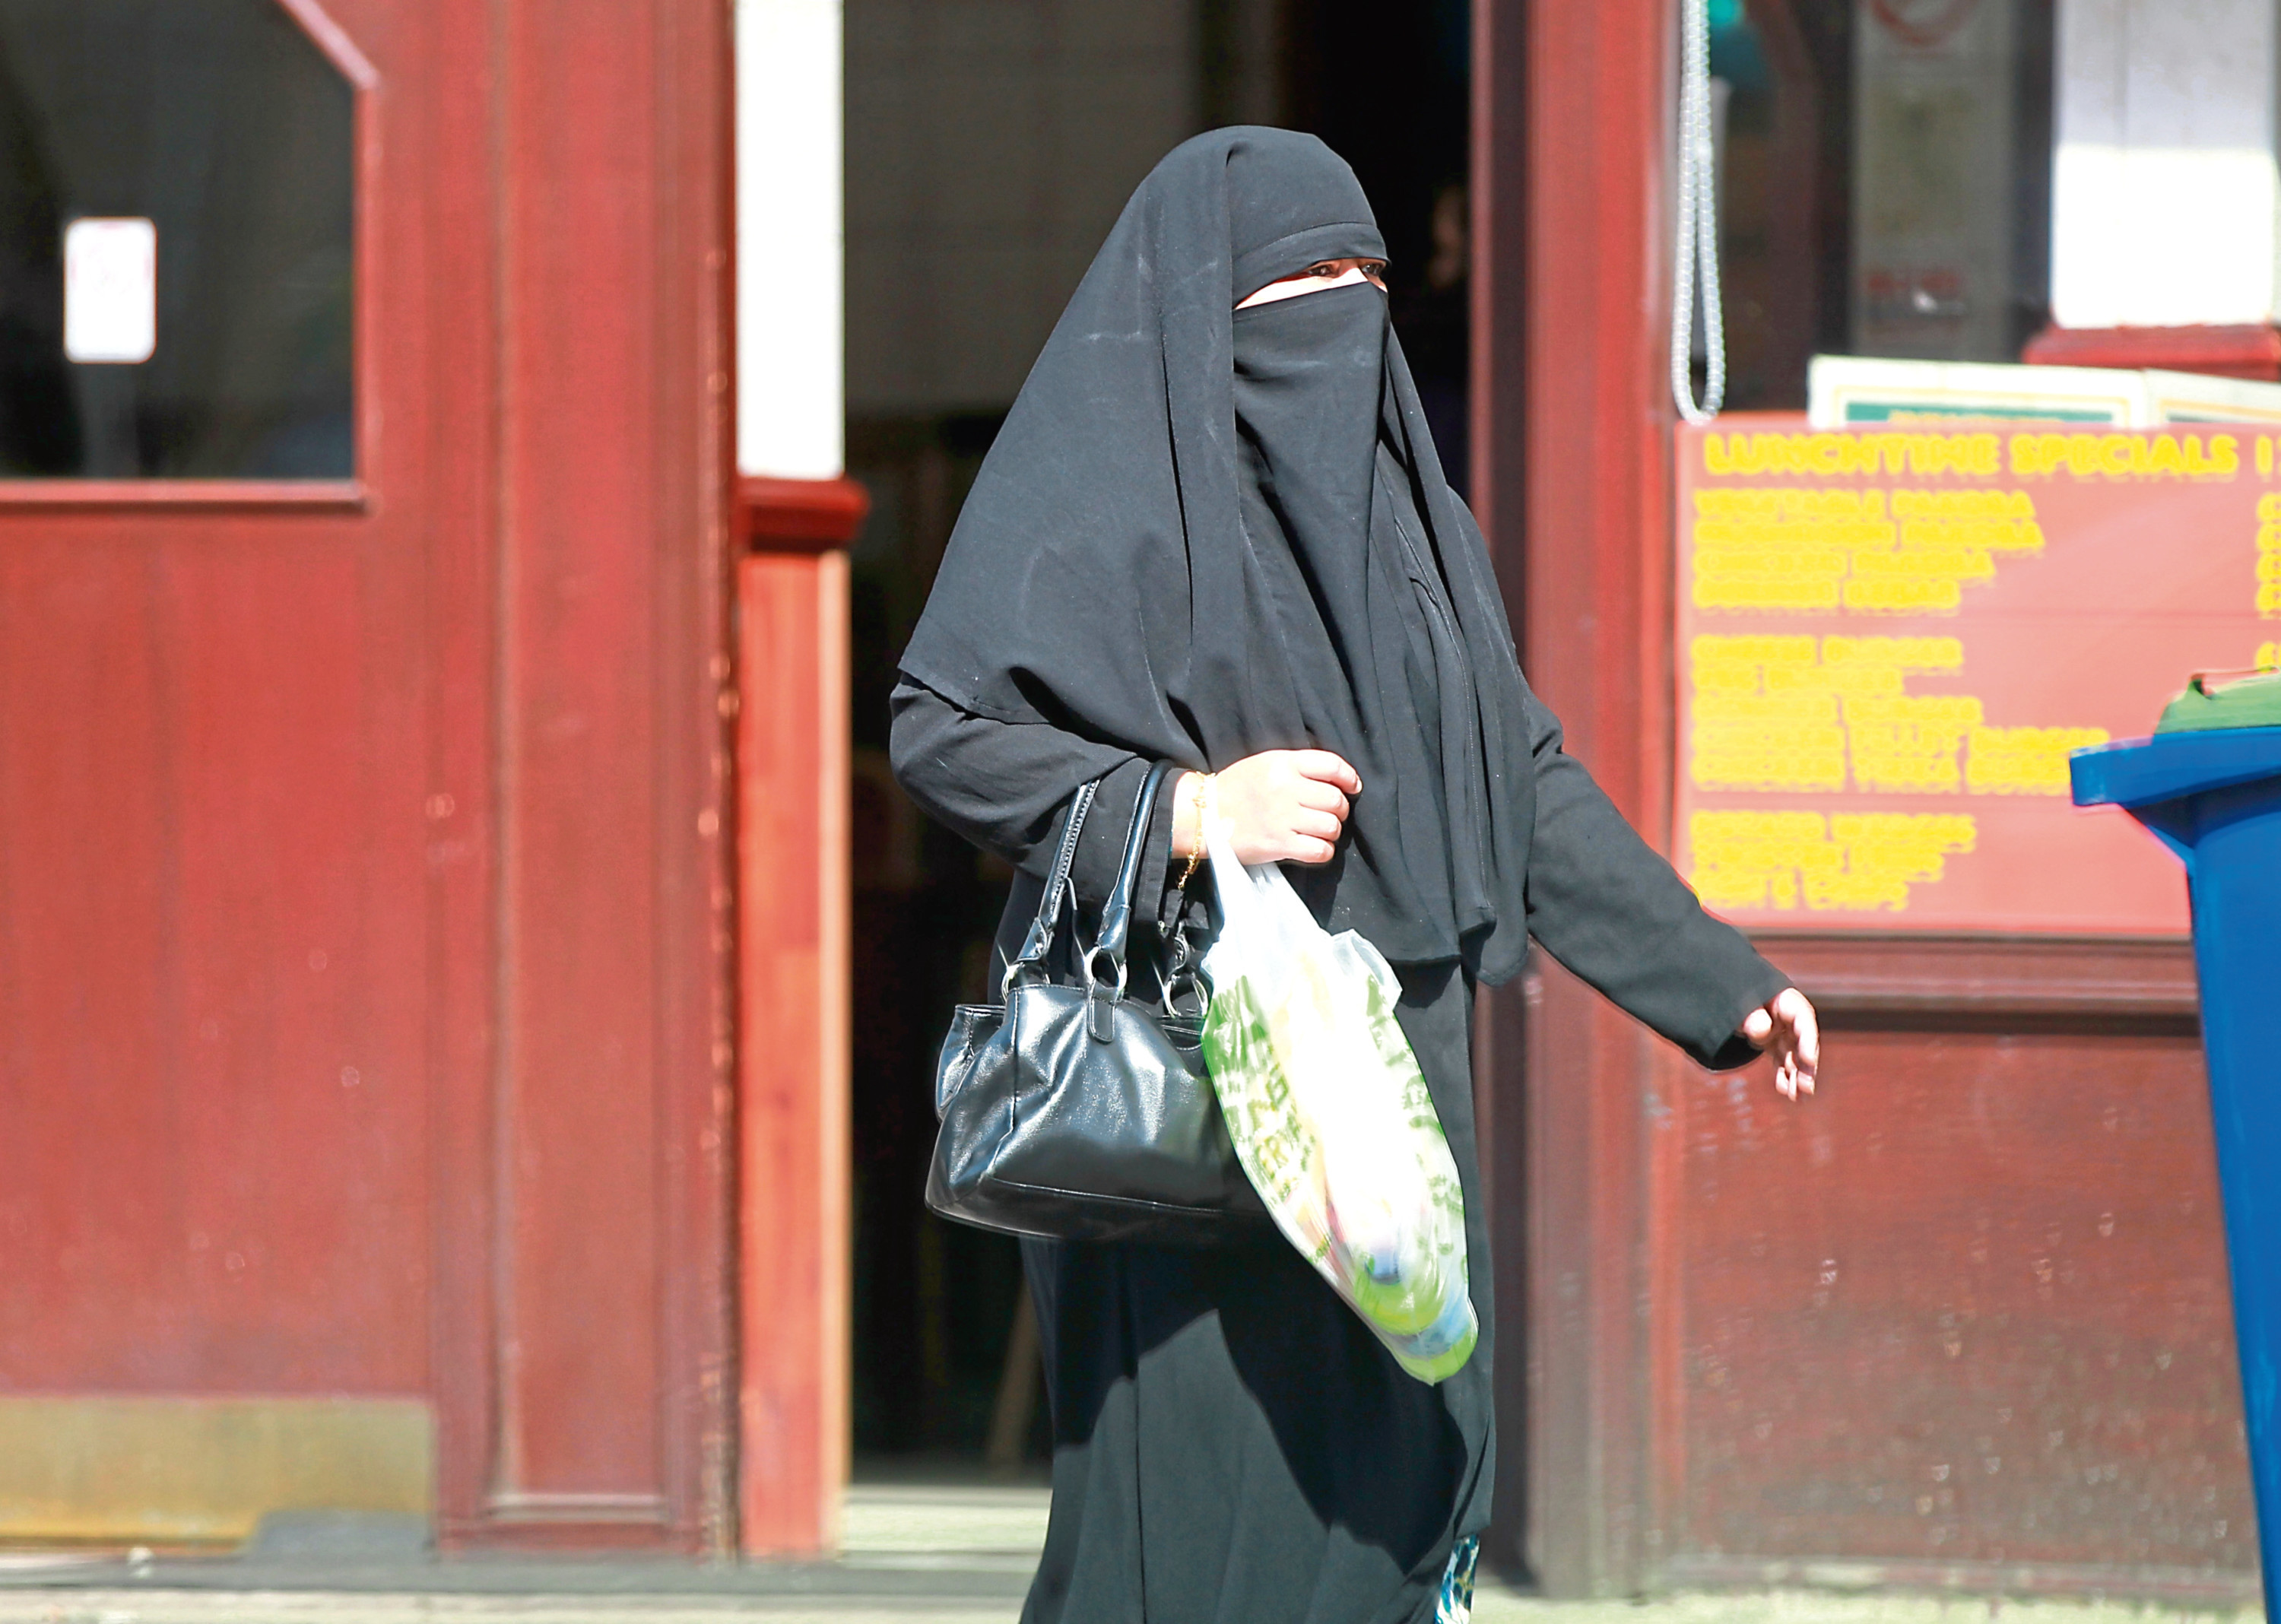 A Muslim woman wearing a Burka.